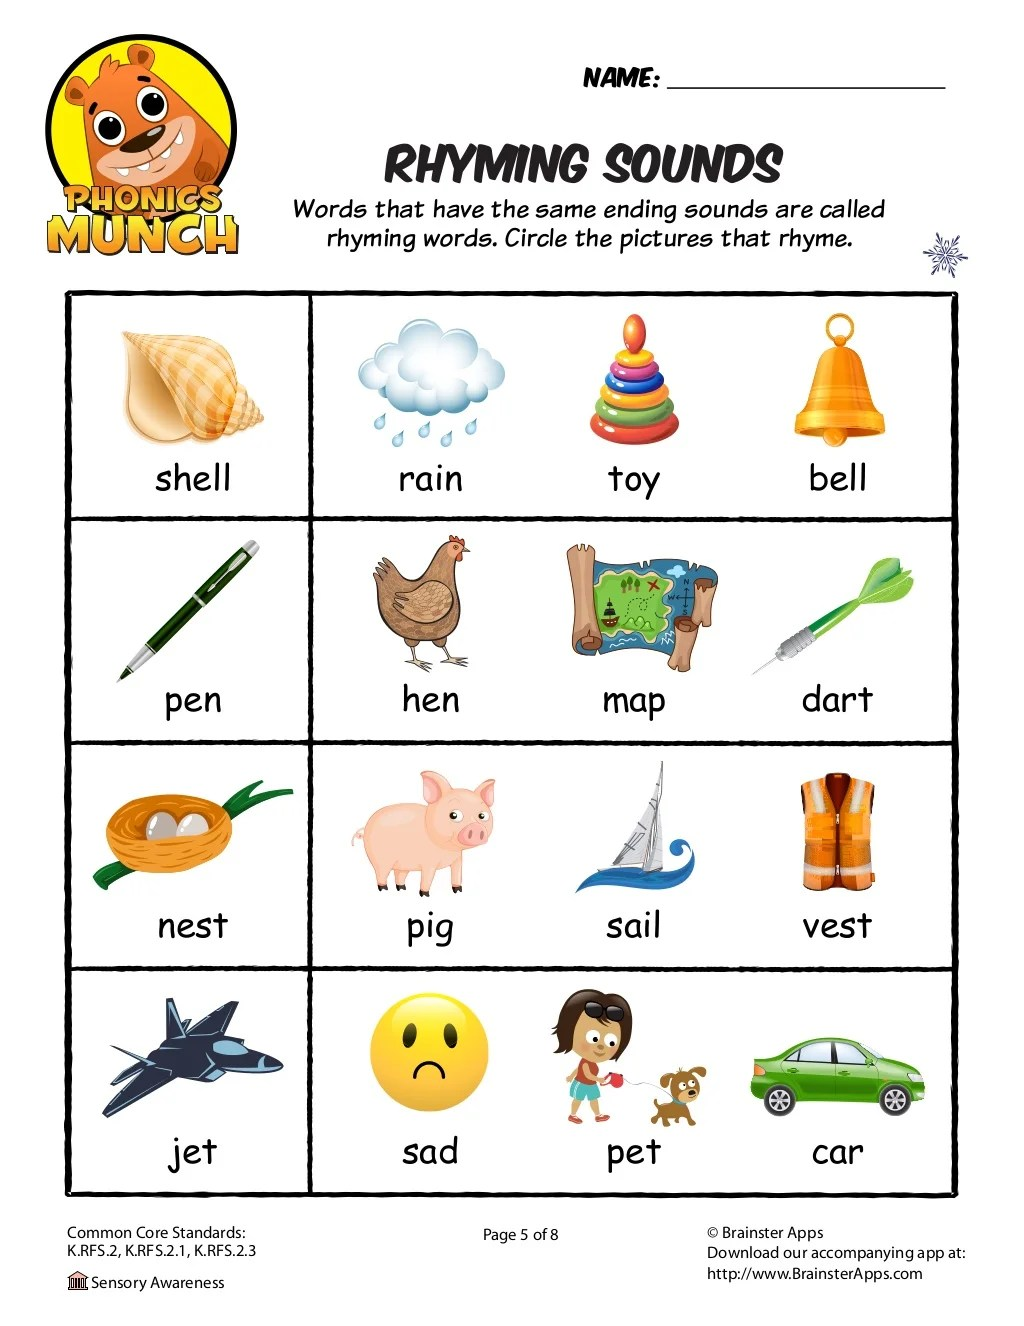 Rhyming Sounds Worksheet